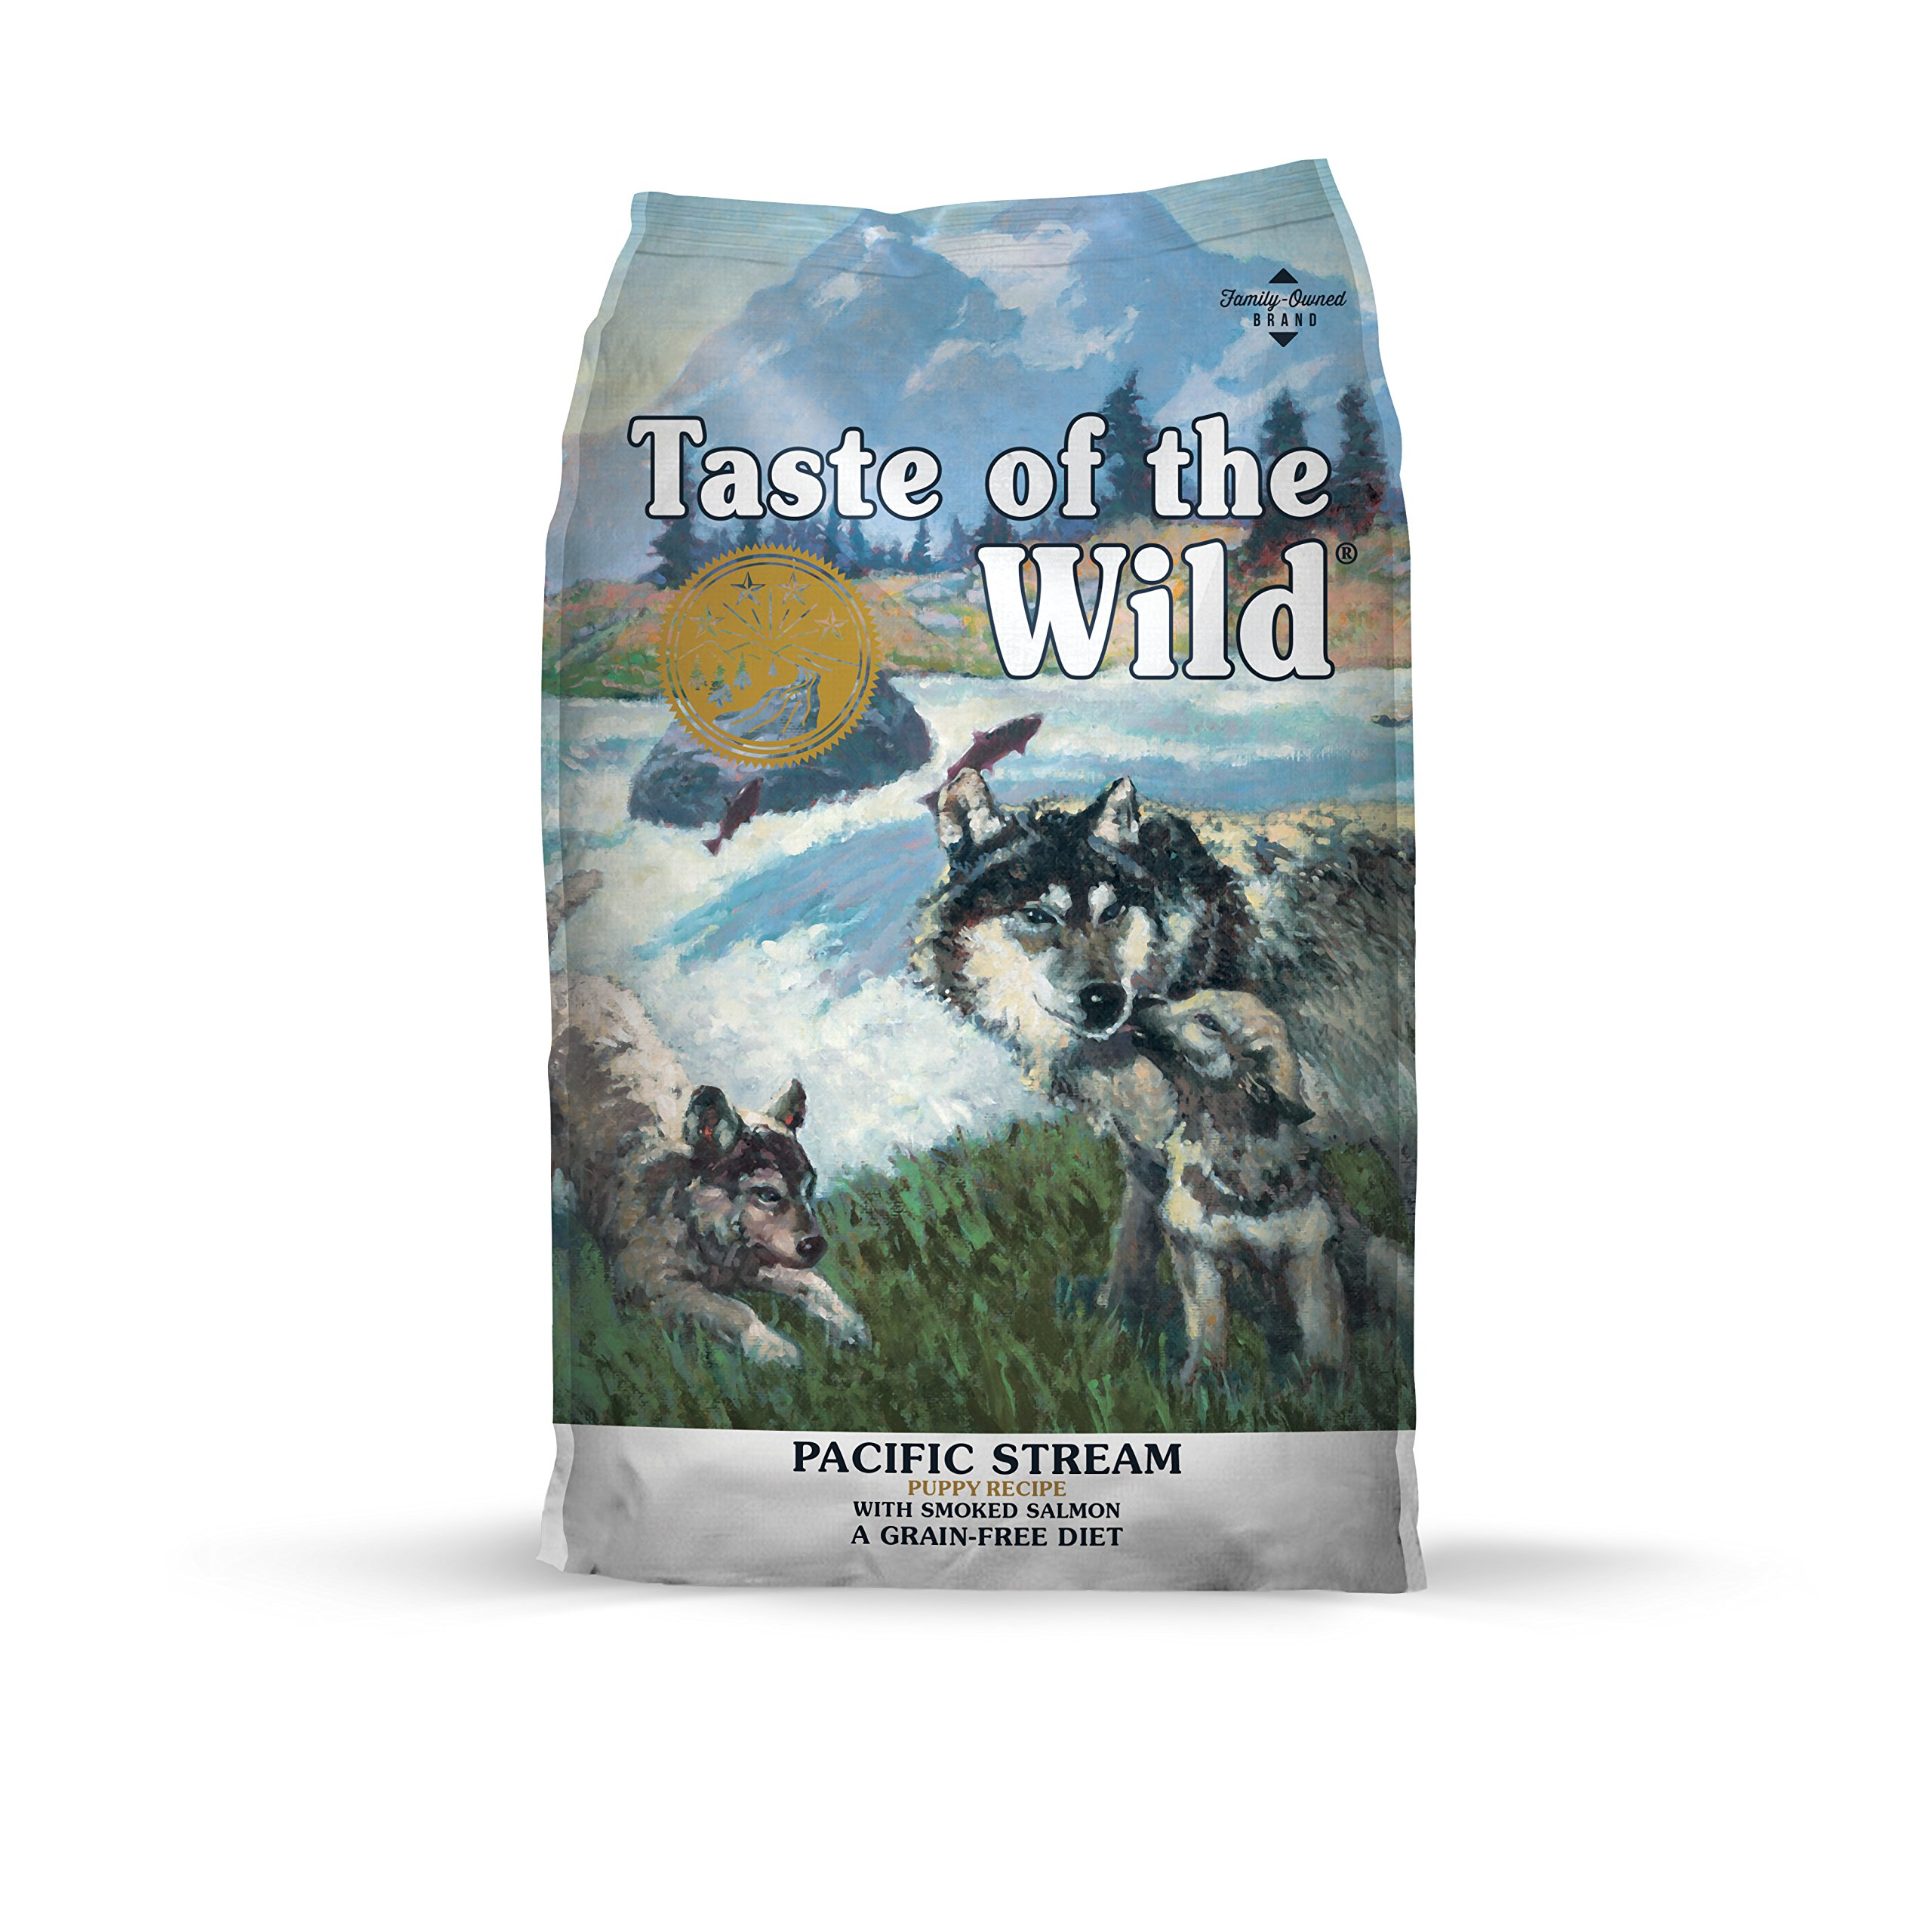 Taste Of The Wild Pacific Salmon Dog Food